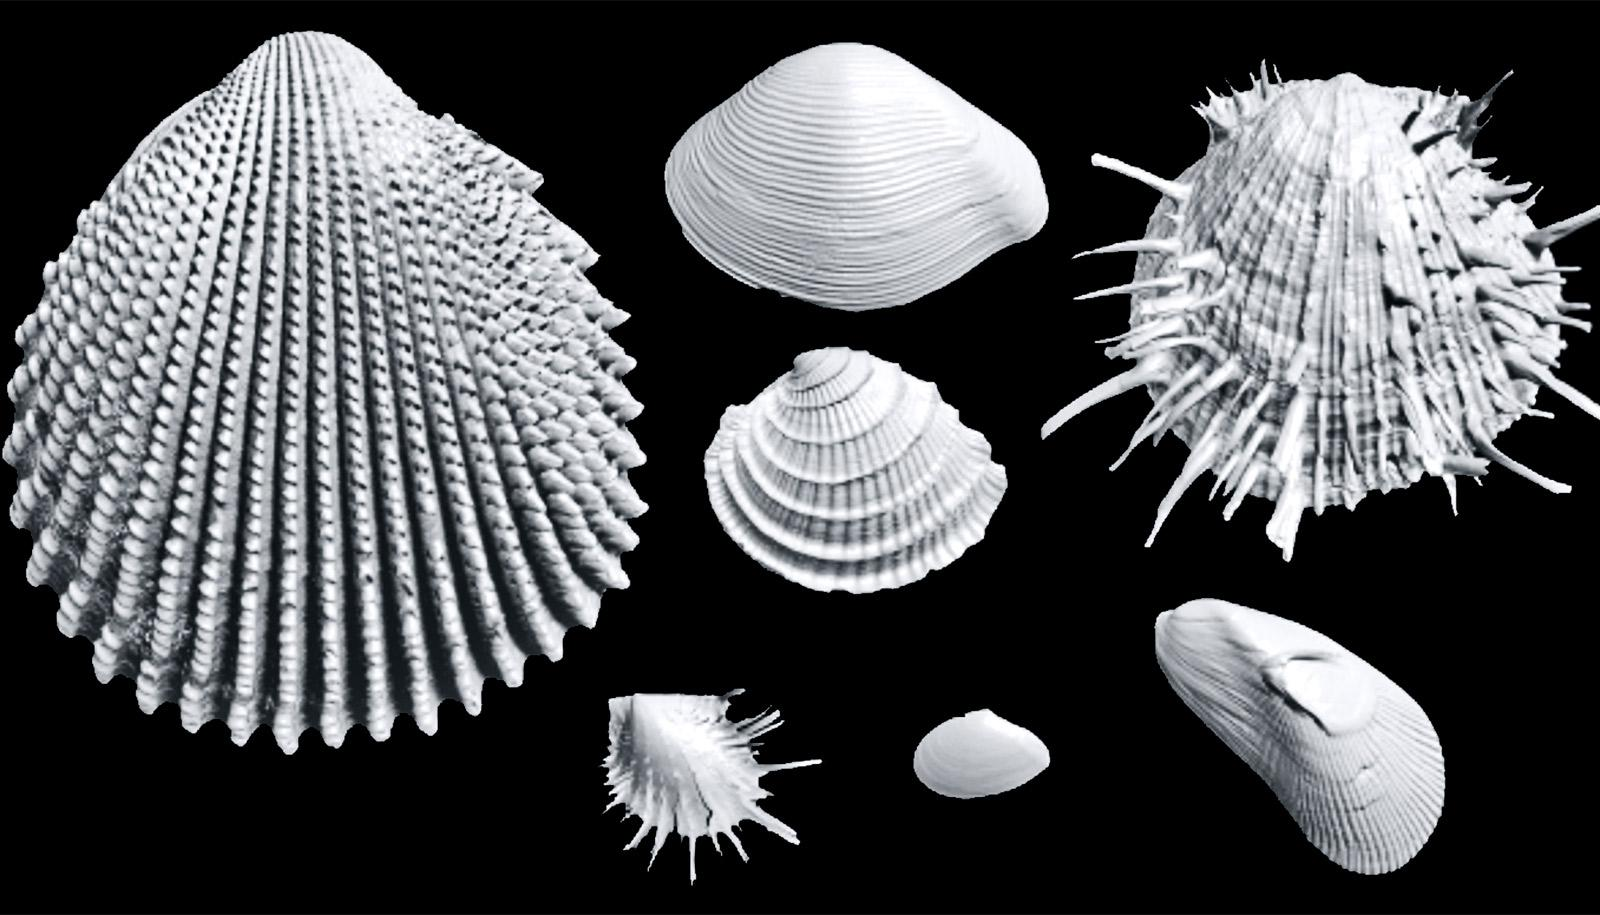 3D images of shells